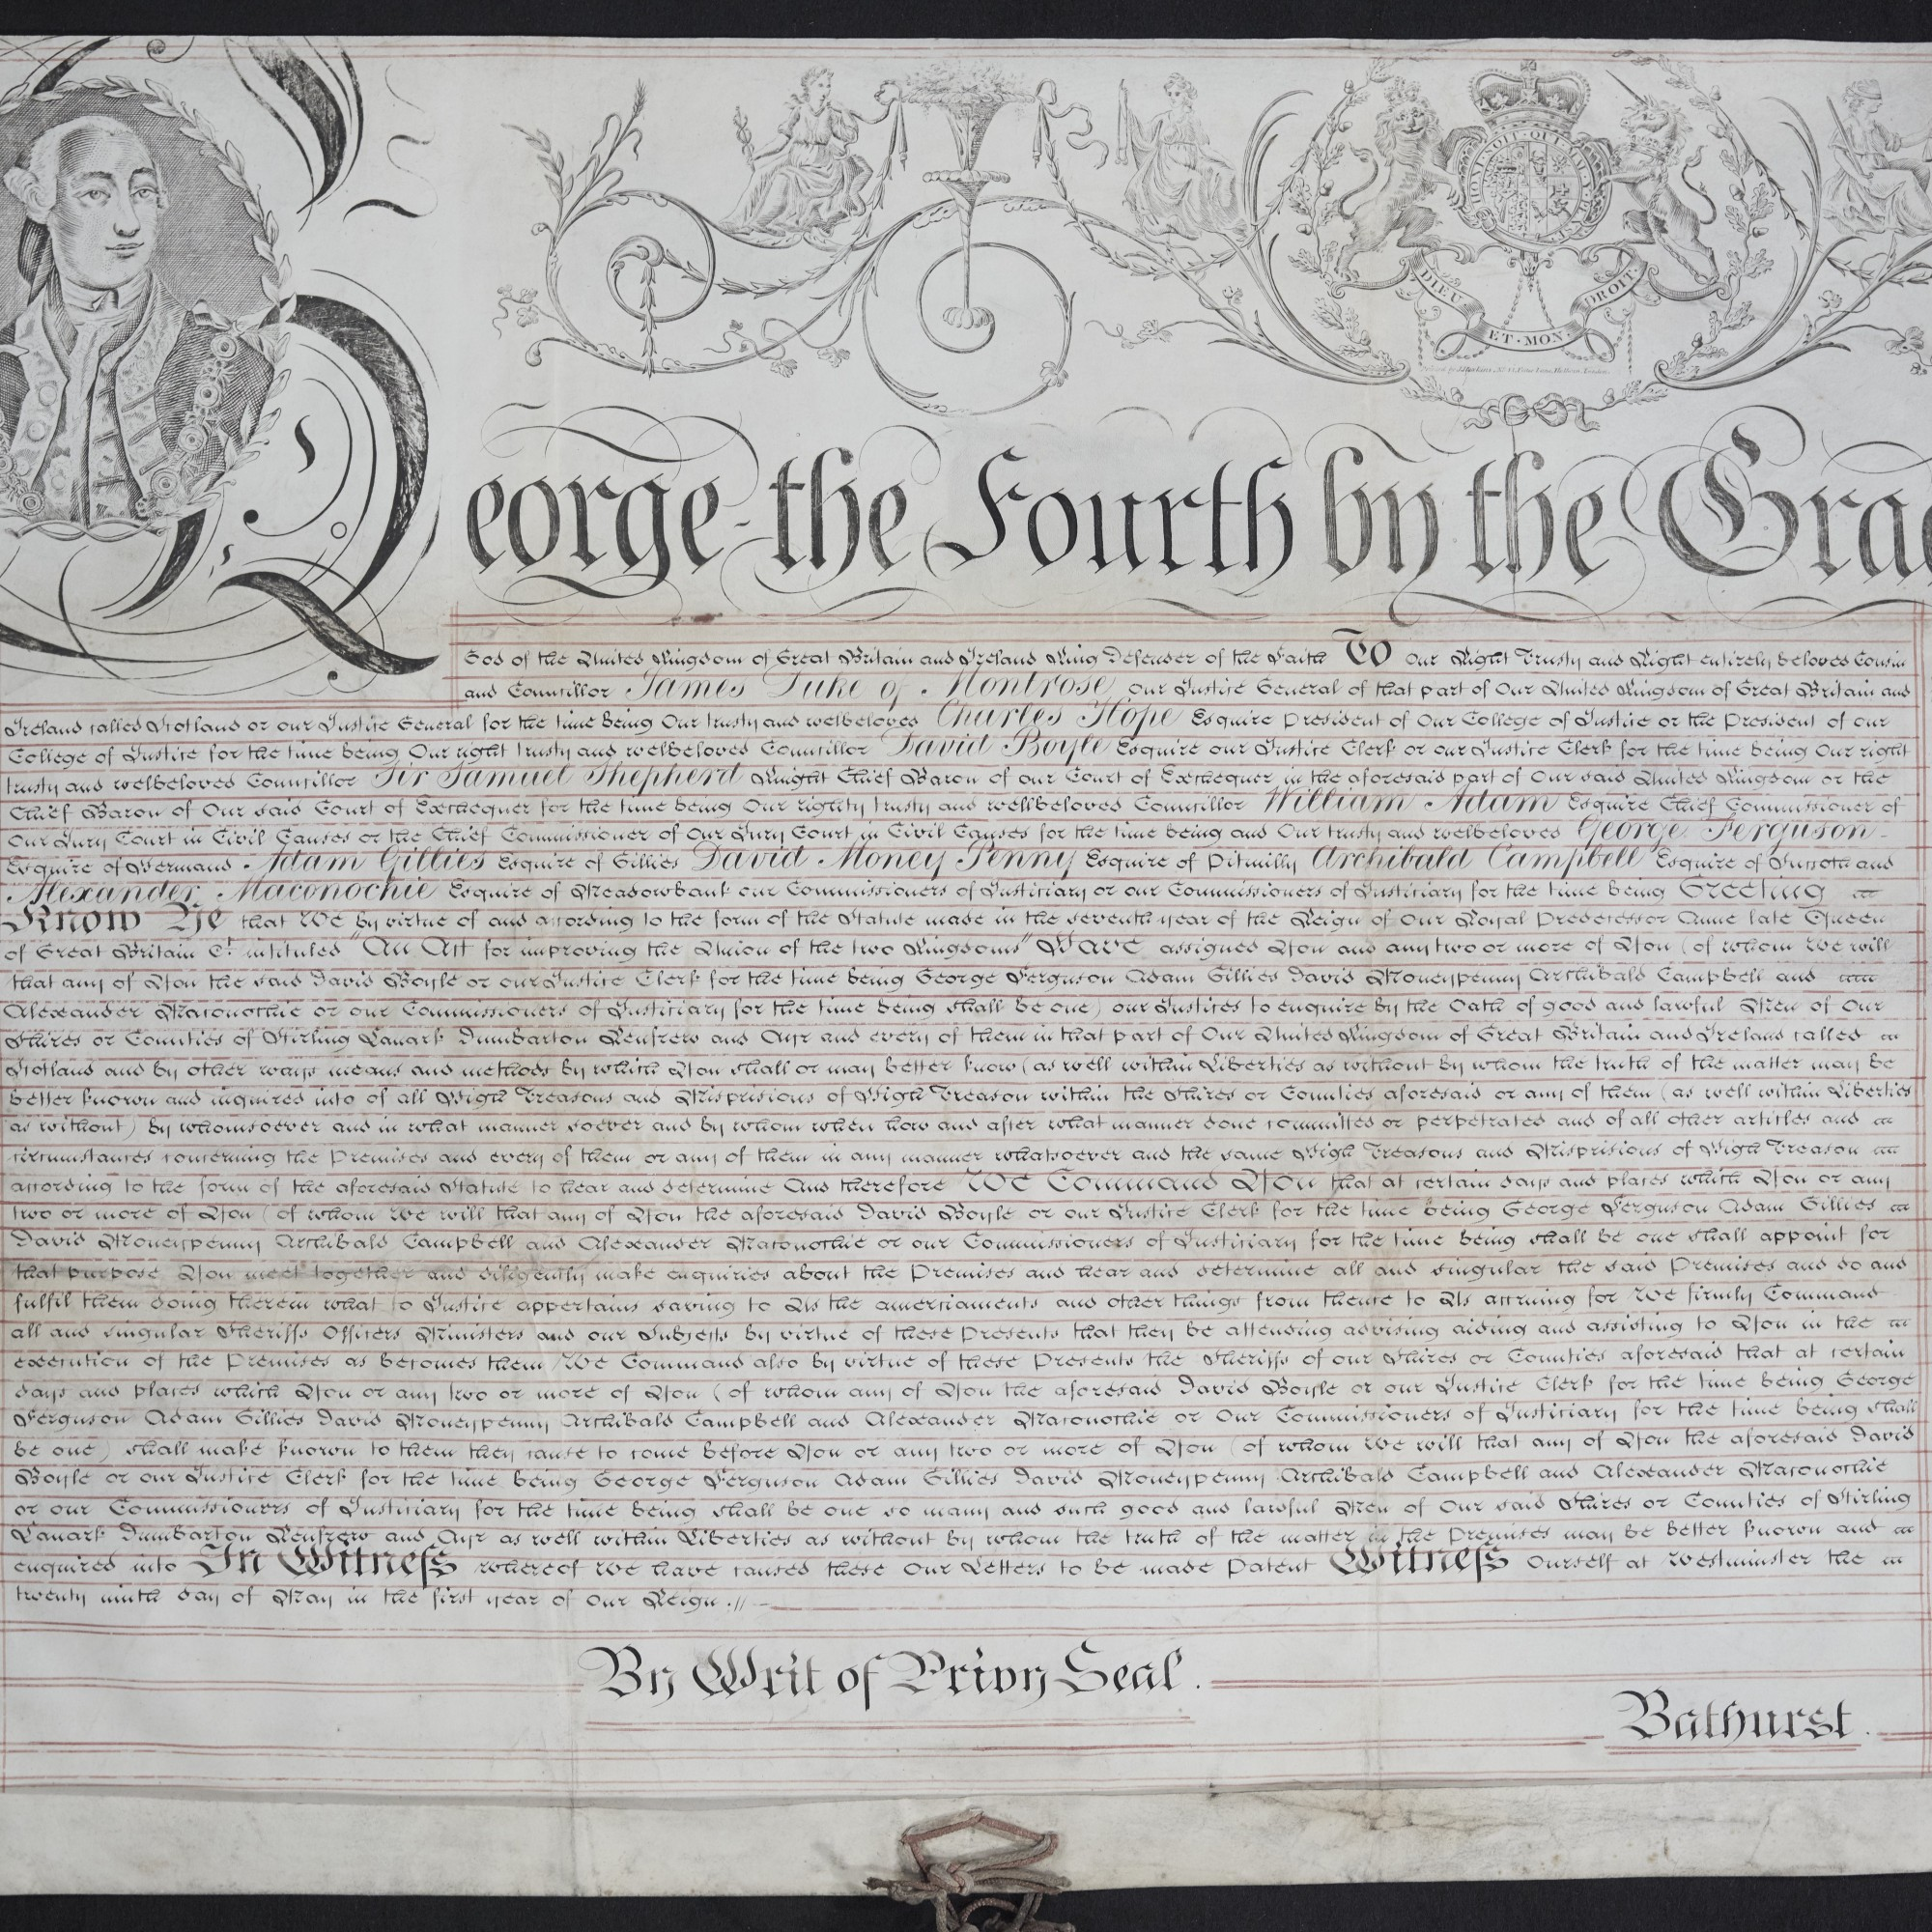 Treason Trials, Commission of Oyer and Terminer, the English text. National Records of Scotland, Crown copyright, JC21/1/2